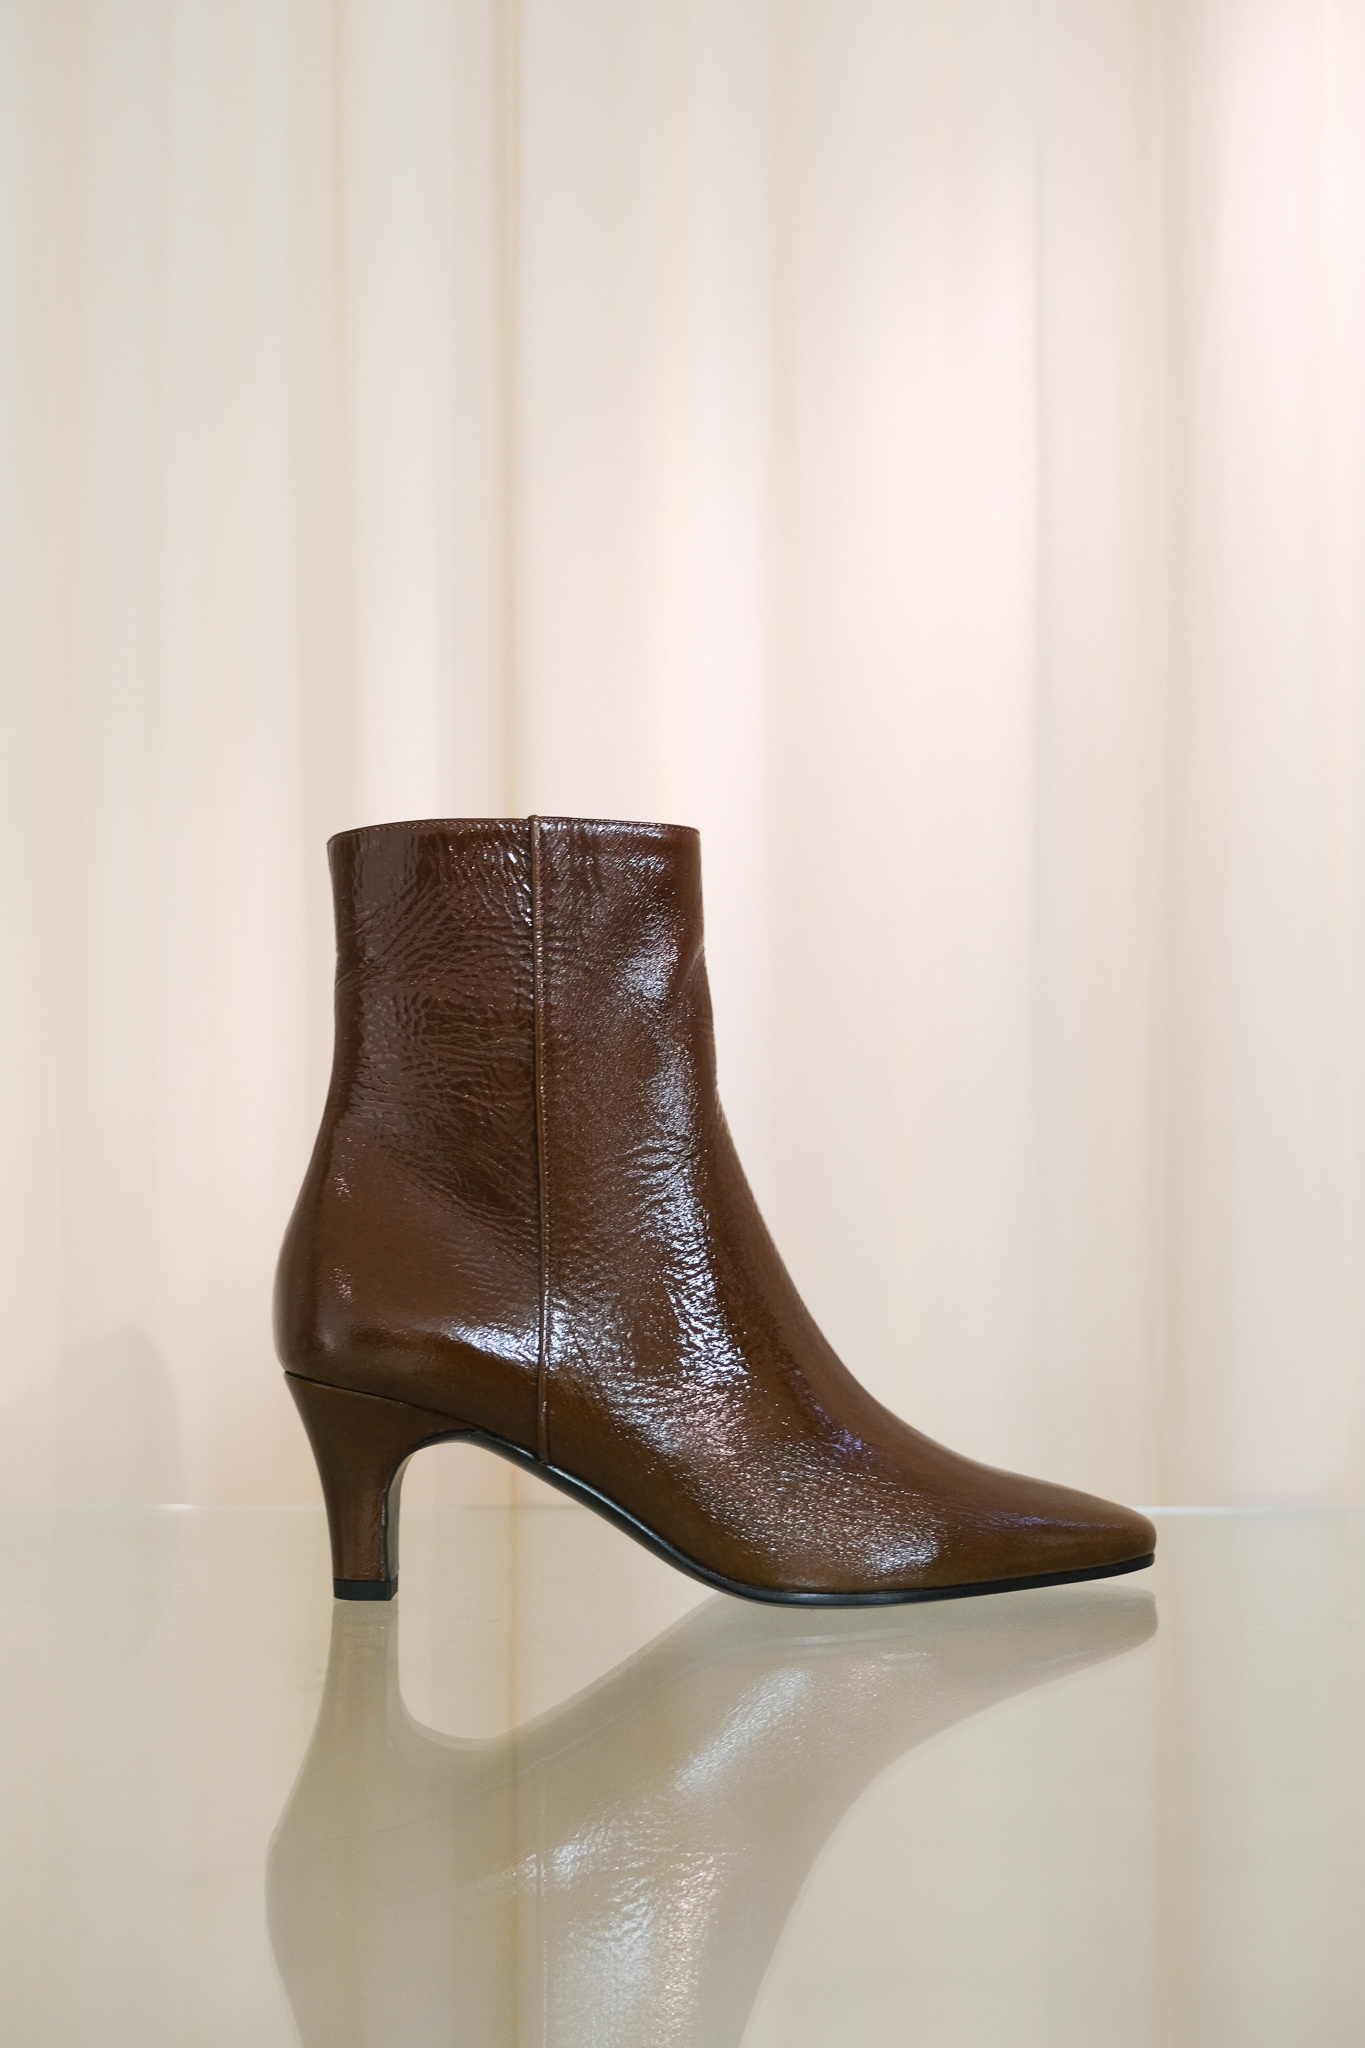 Ginger Boots Star Anise